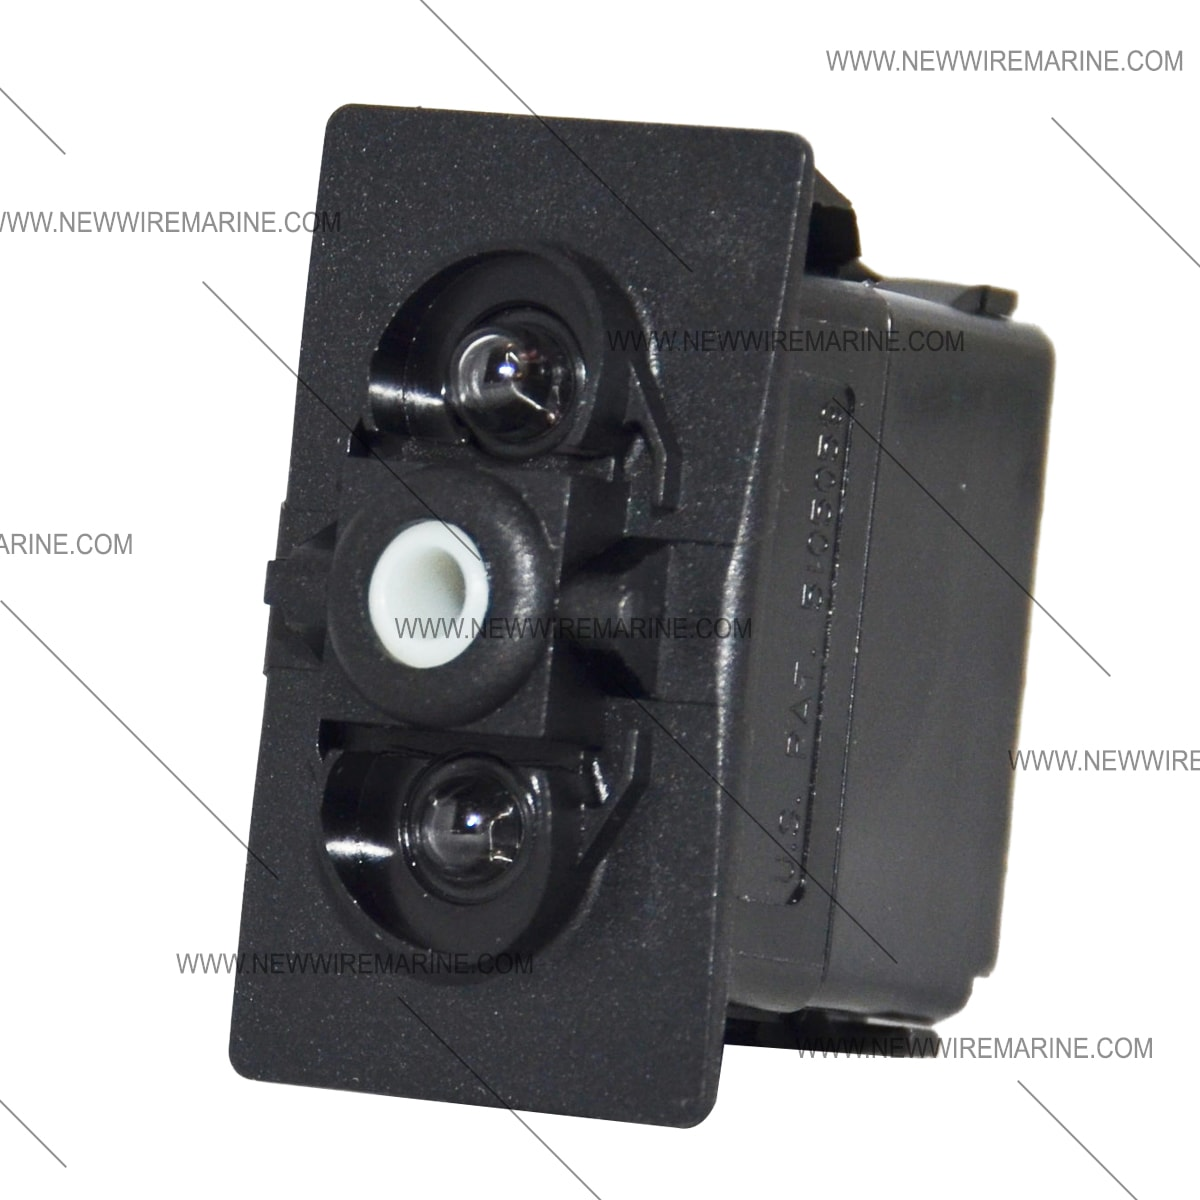 Carling double light replacement rocker switch